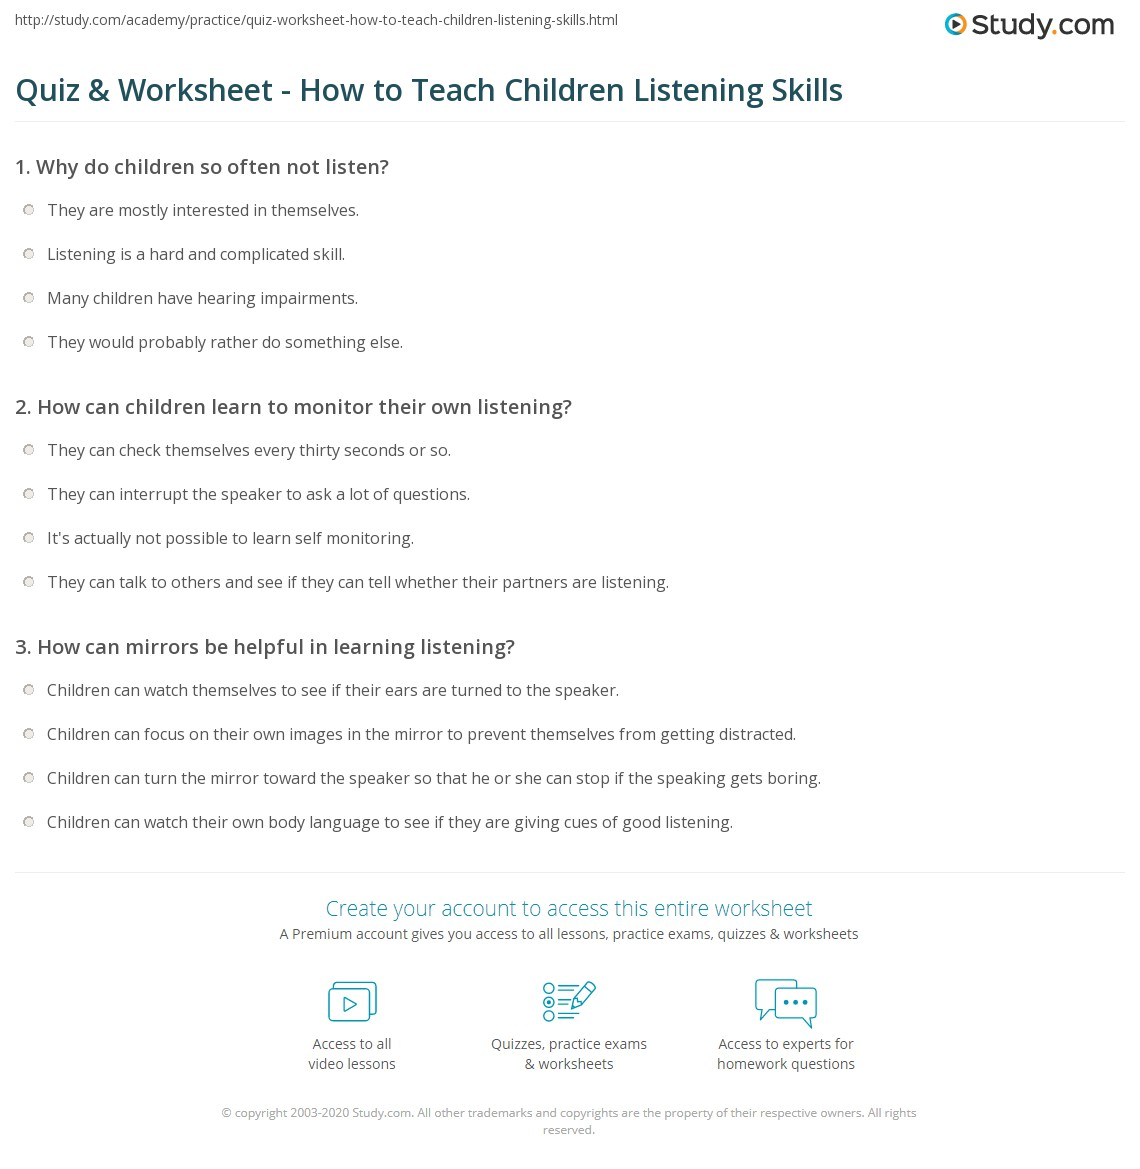 Free Worksheet Listening Skills Worksheets quiz worksheet how to teach children listening skills study com print teaching worksheet